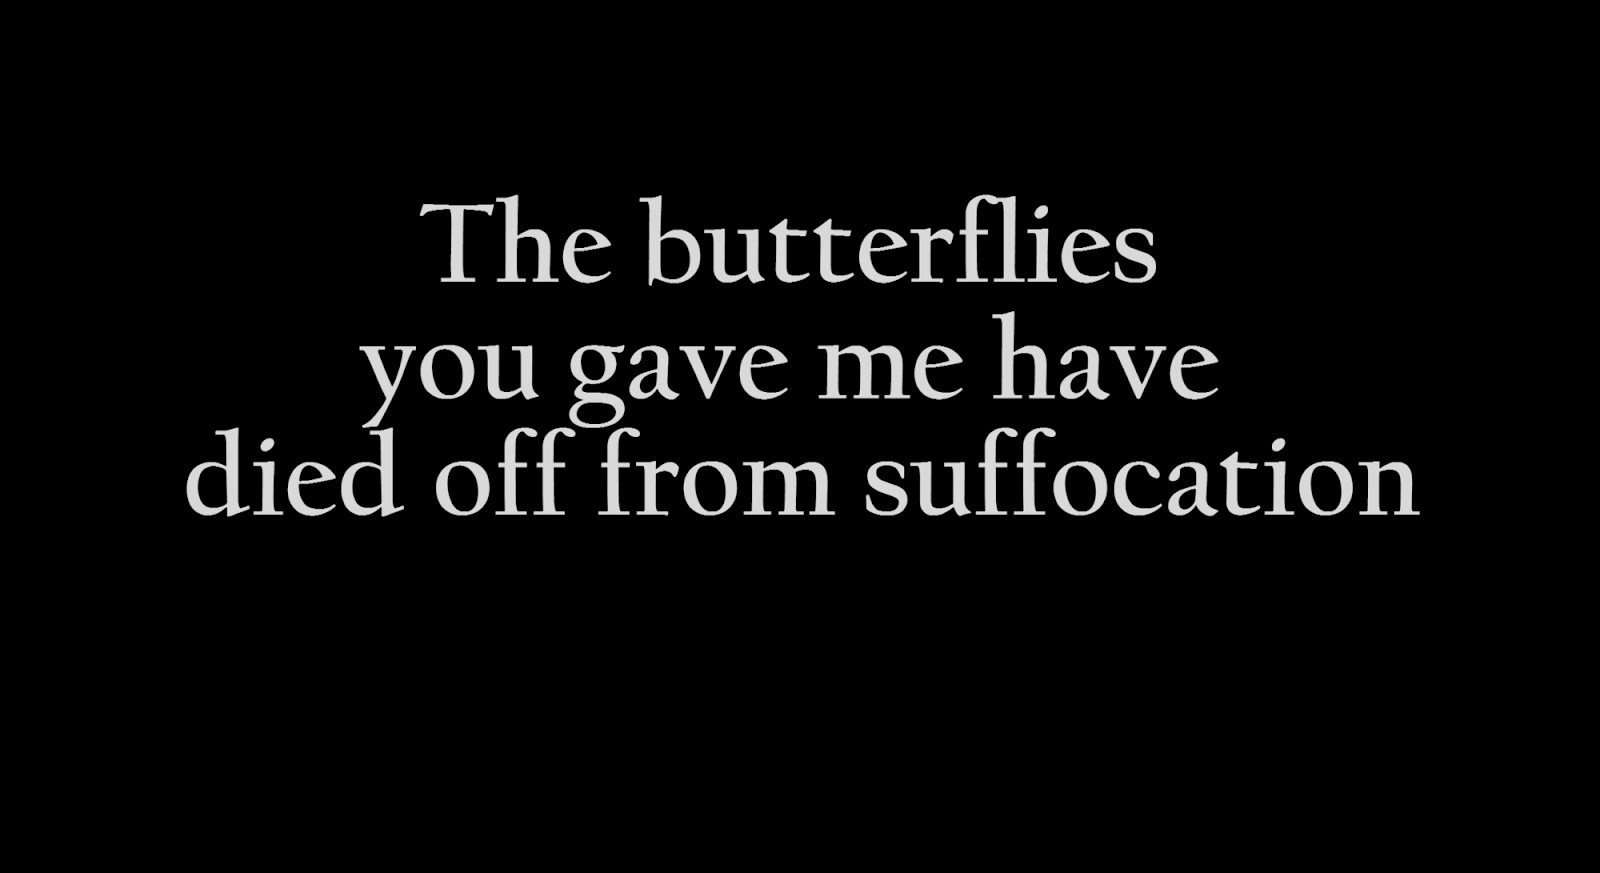 The butterflies you gave me have died off from suffocation